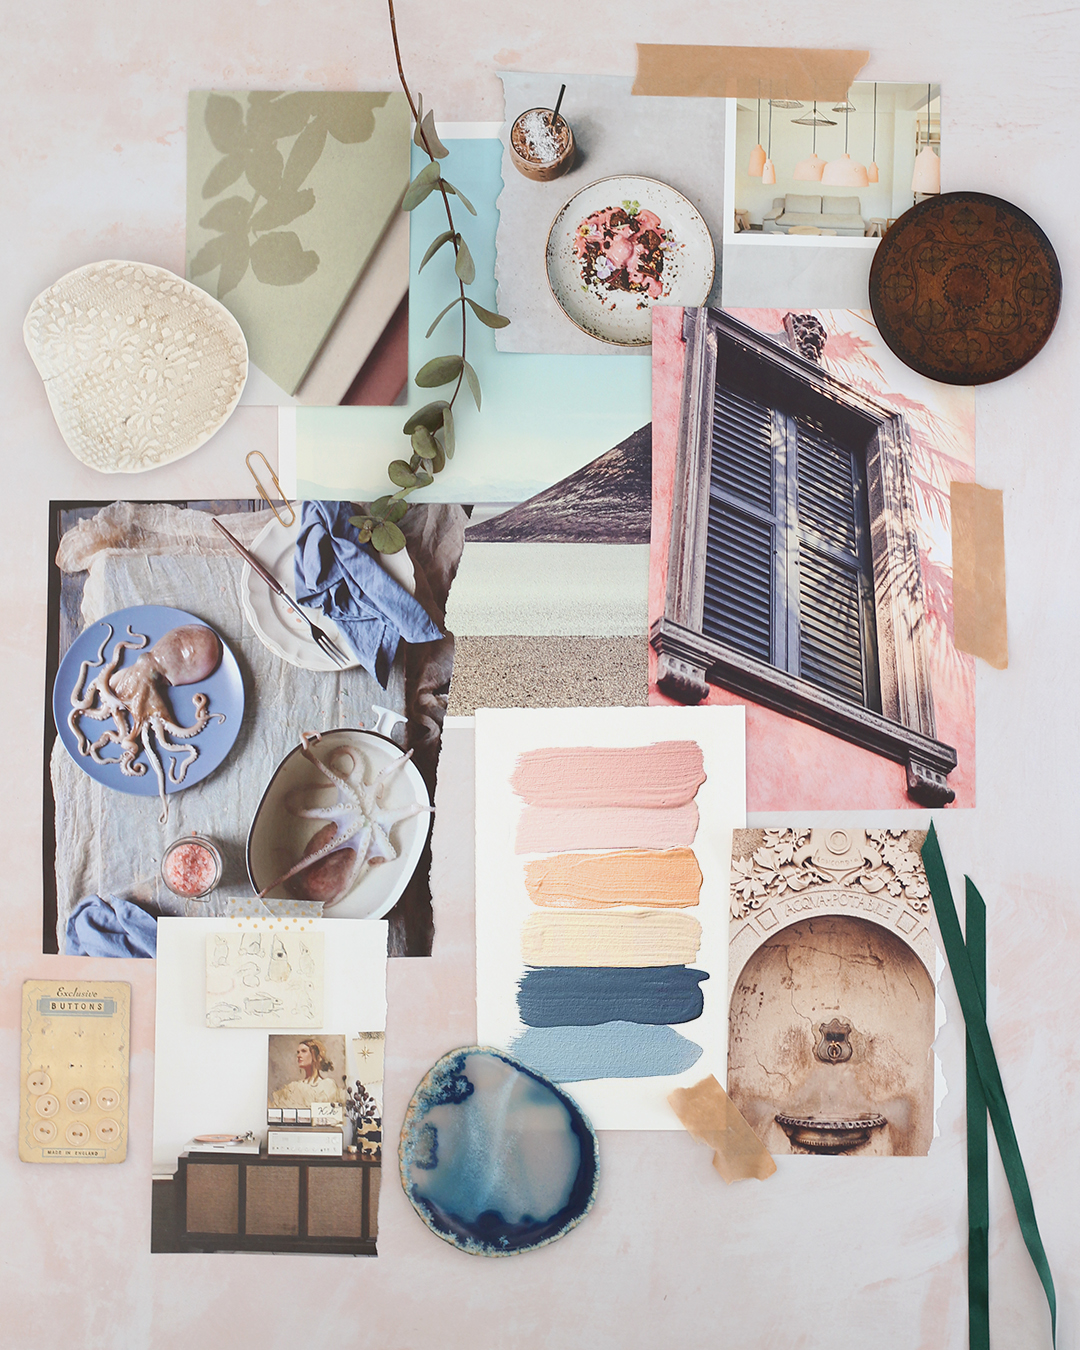 Mood board for curating your style